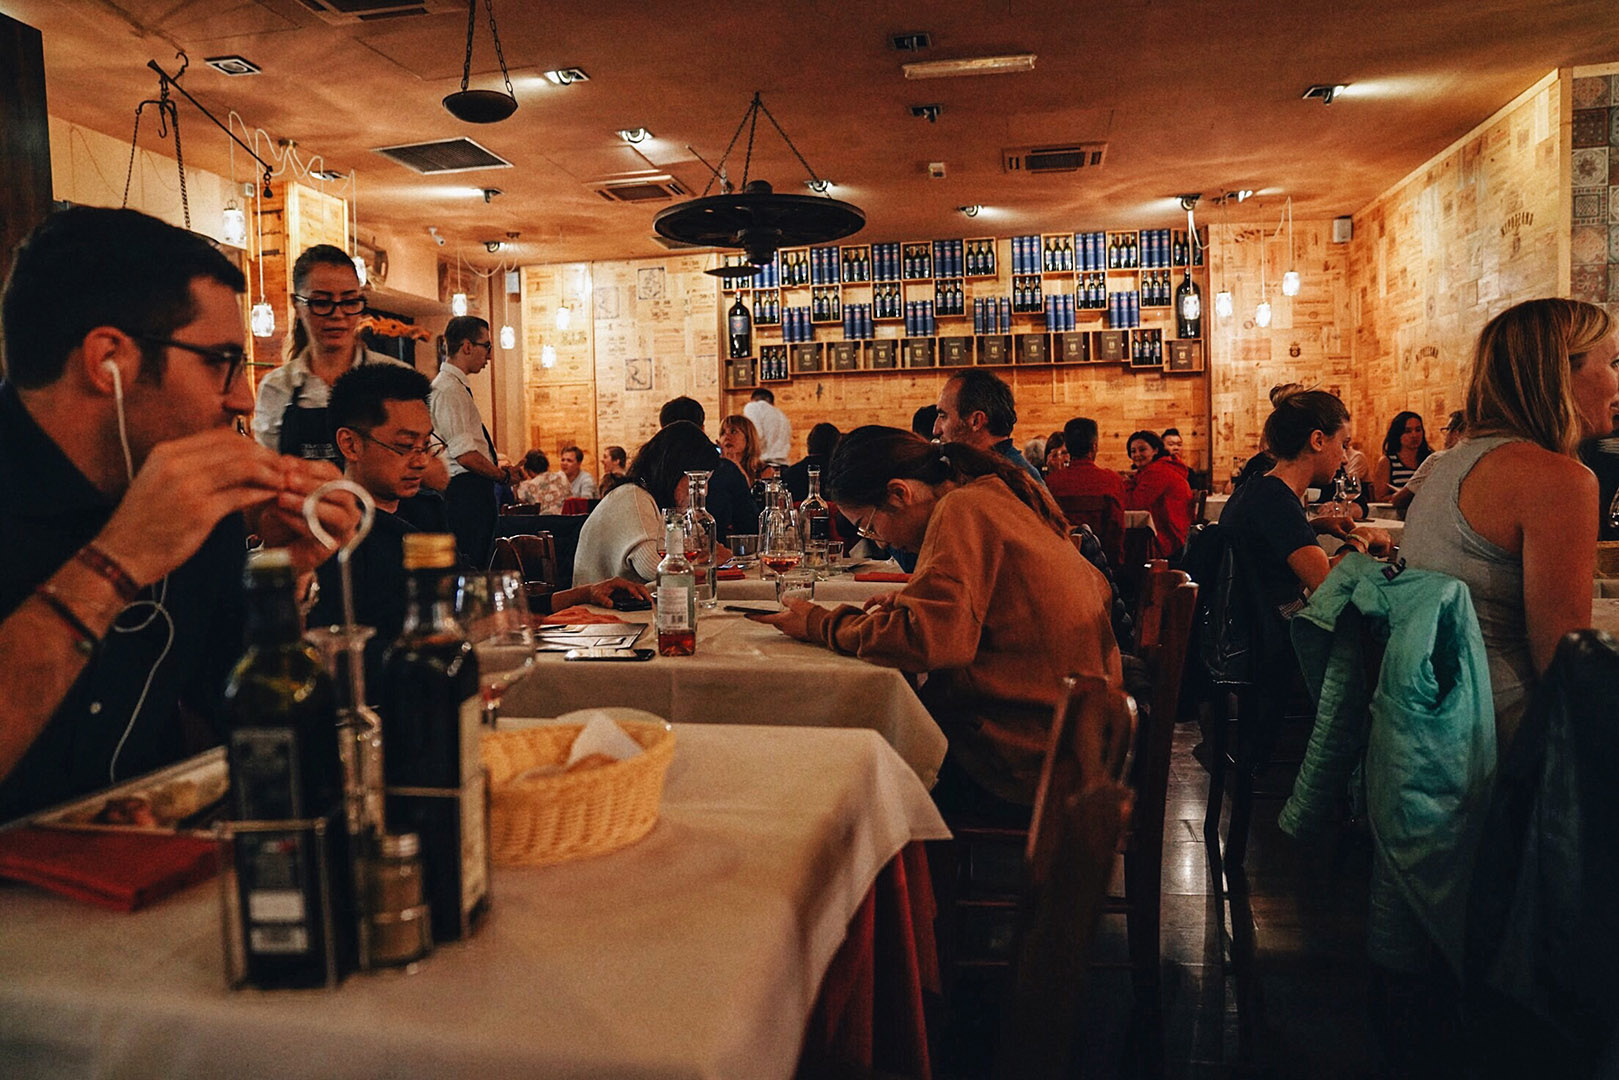 Dinner at  Trattoria dall'Oste